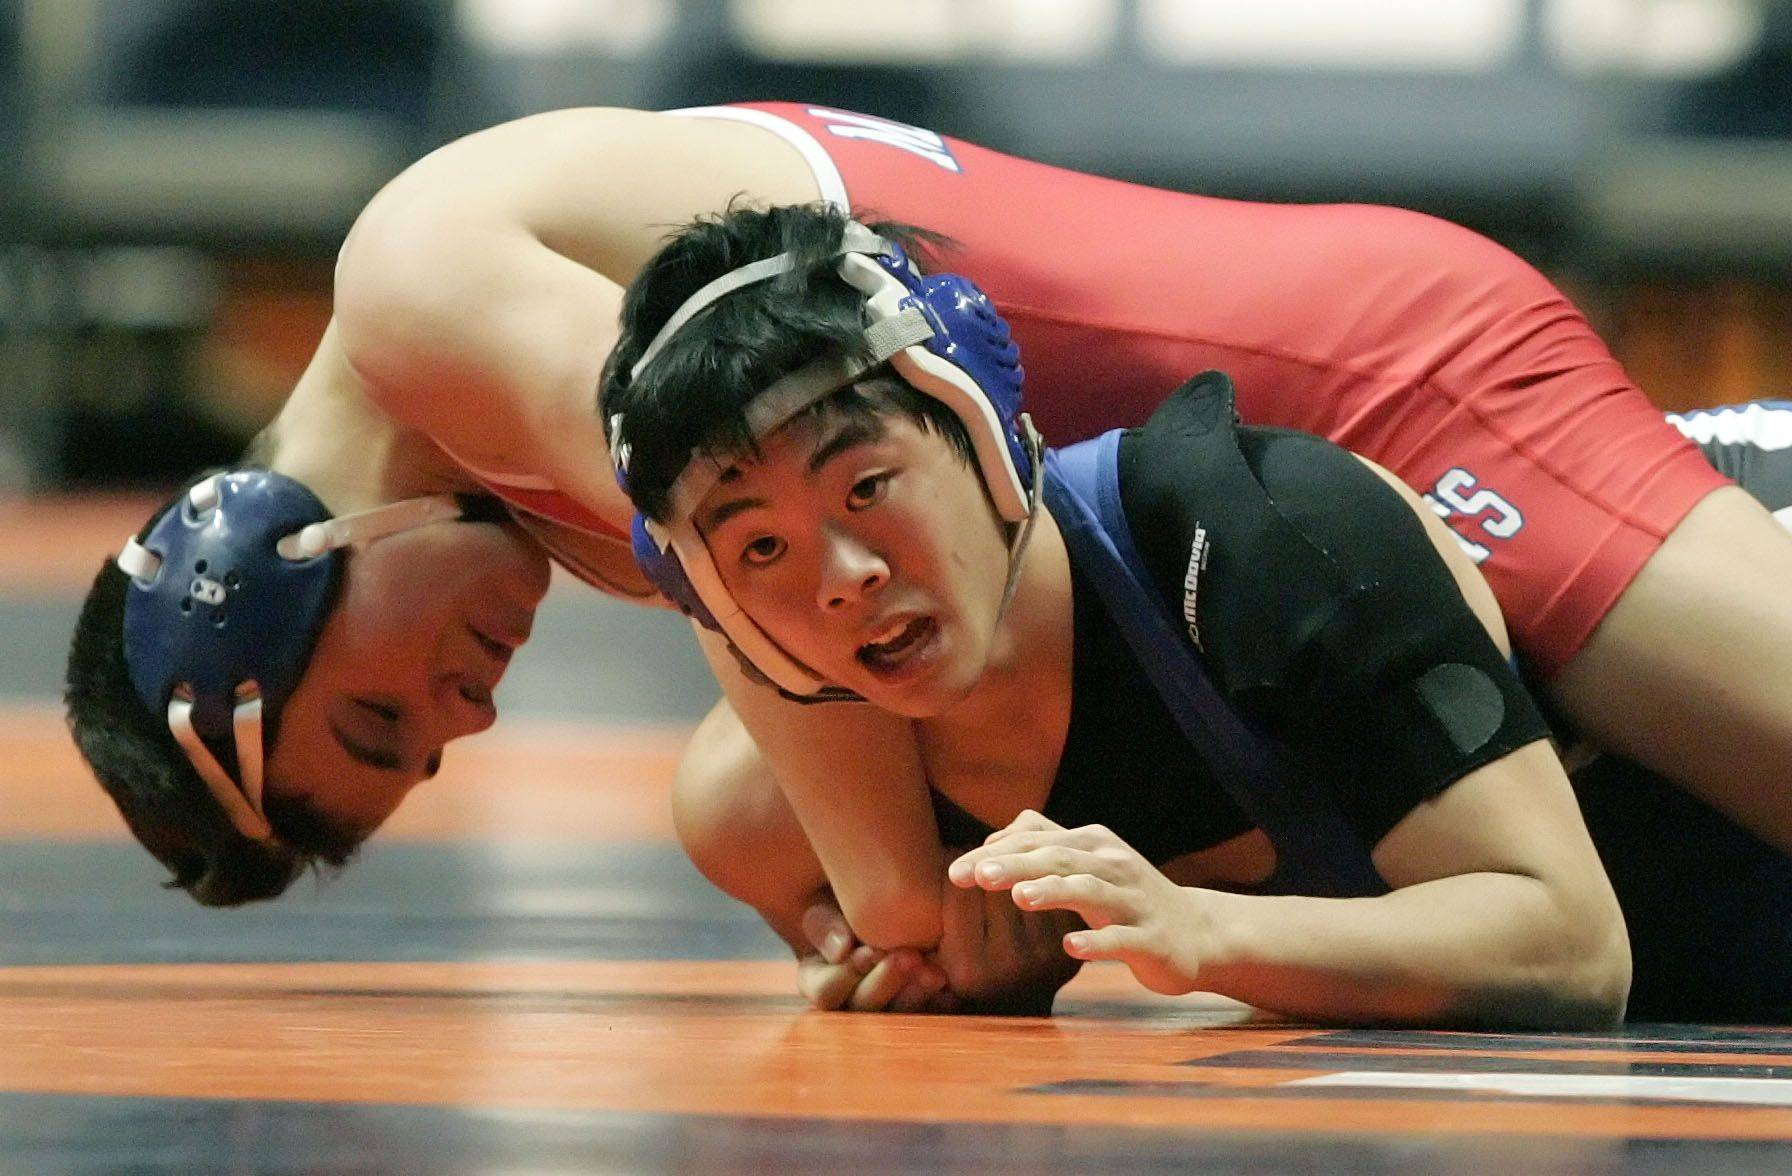 Vernon Hills' Gideon Yim wrestles Marmion's Eddie Greco at 125 pounds in the 2a quarterfinals during state wrestling Friday in Champaign.